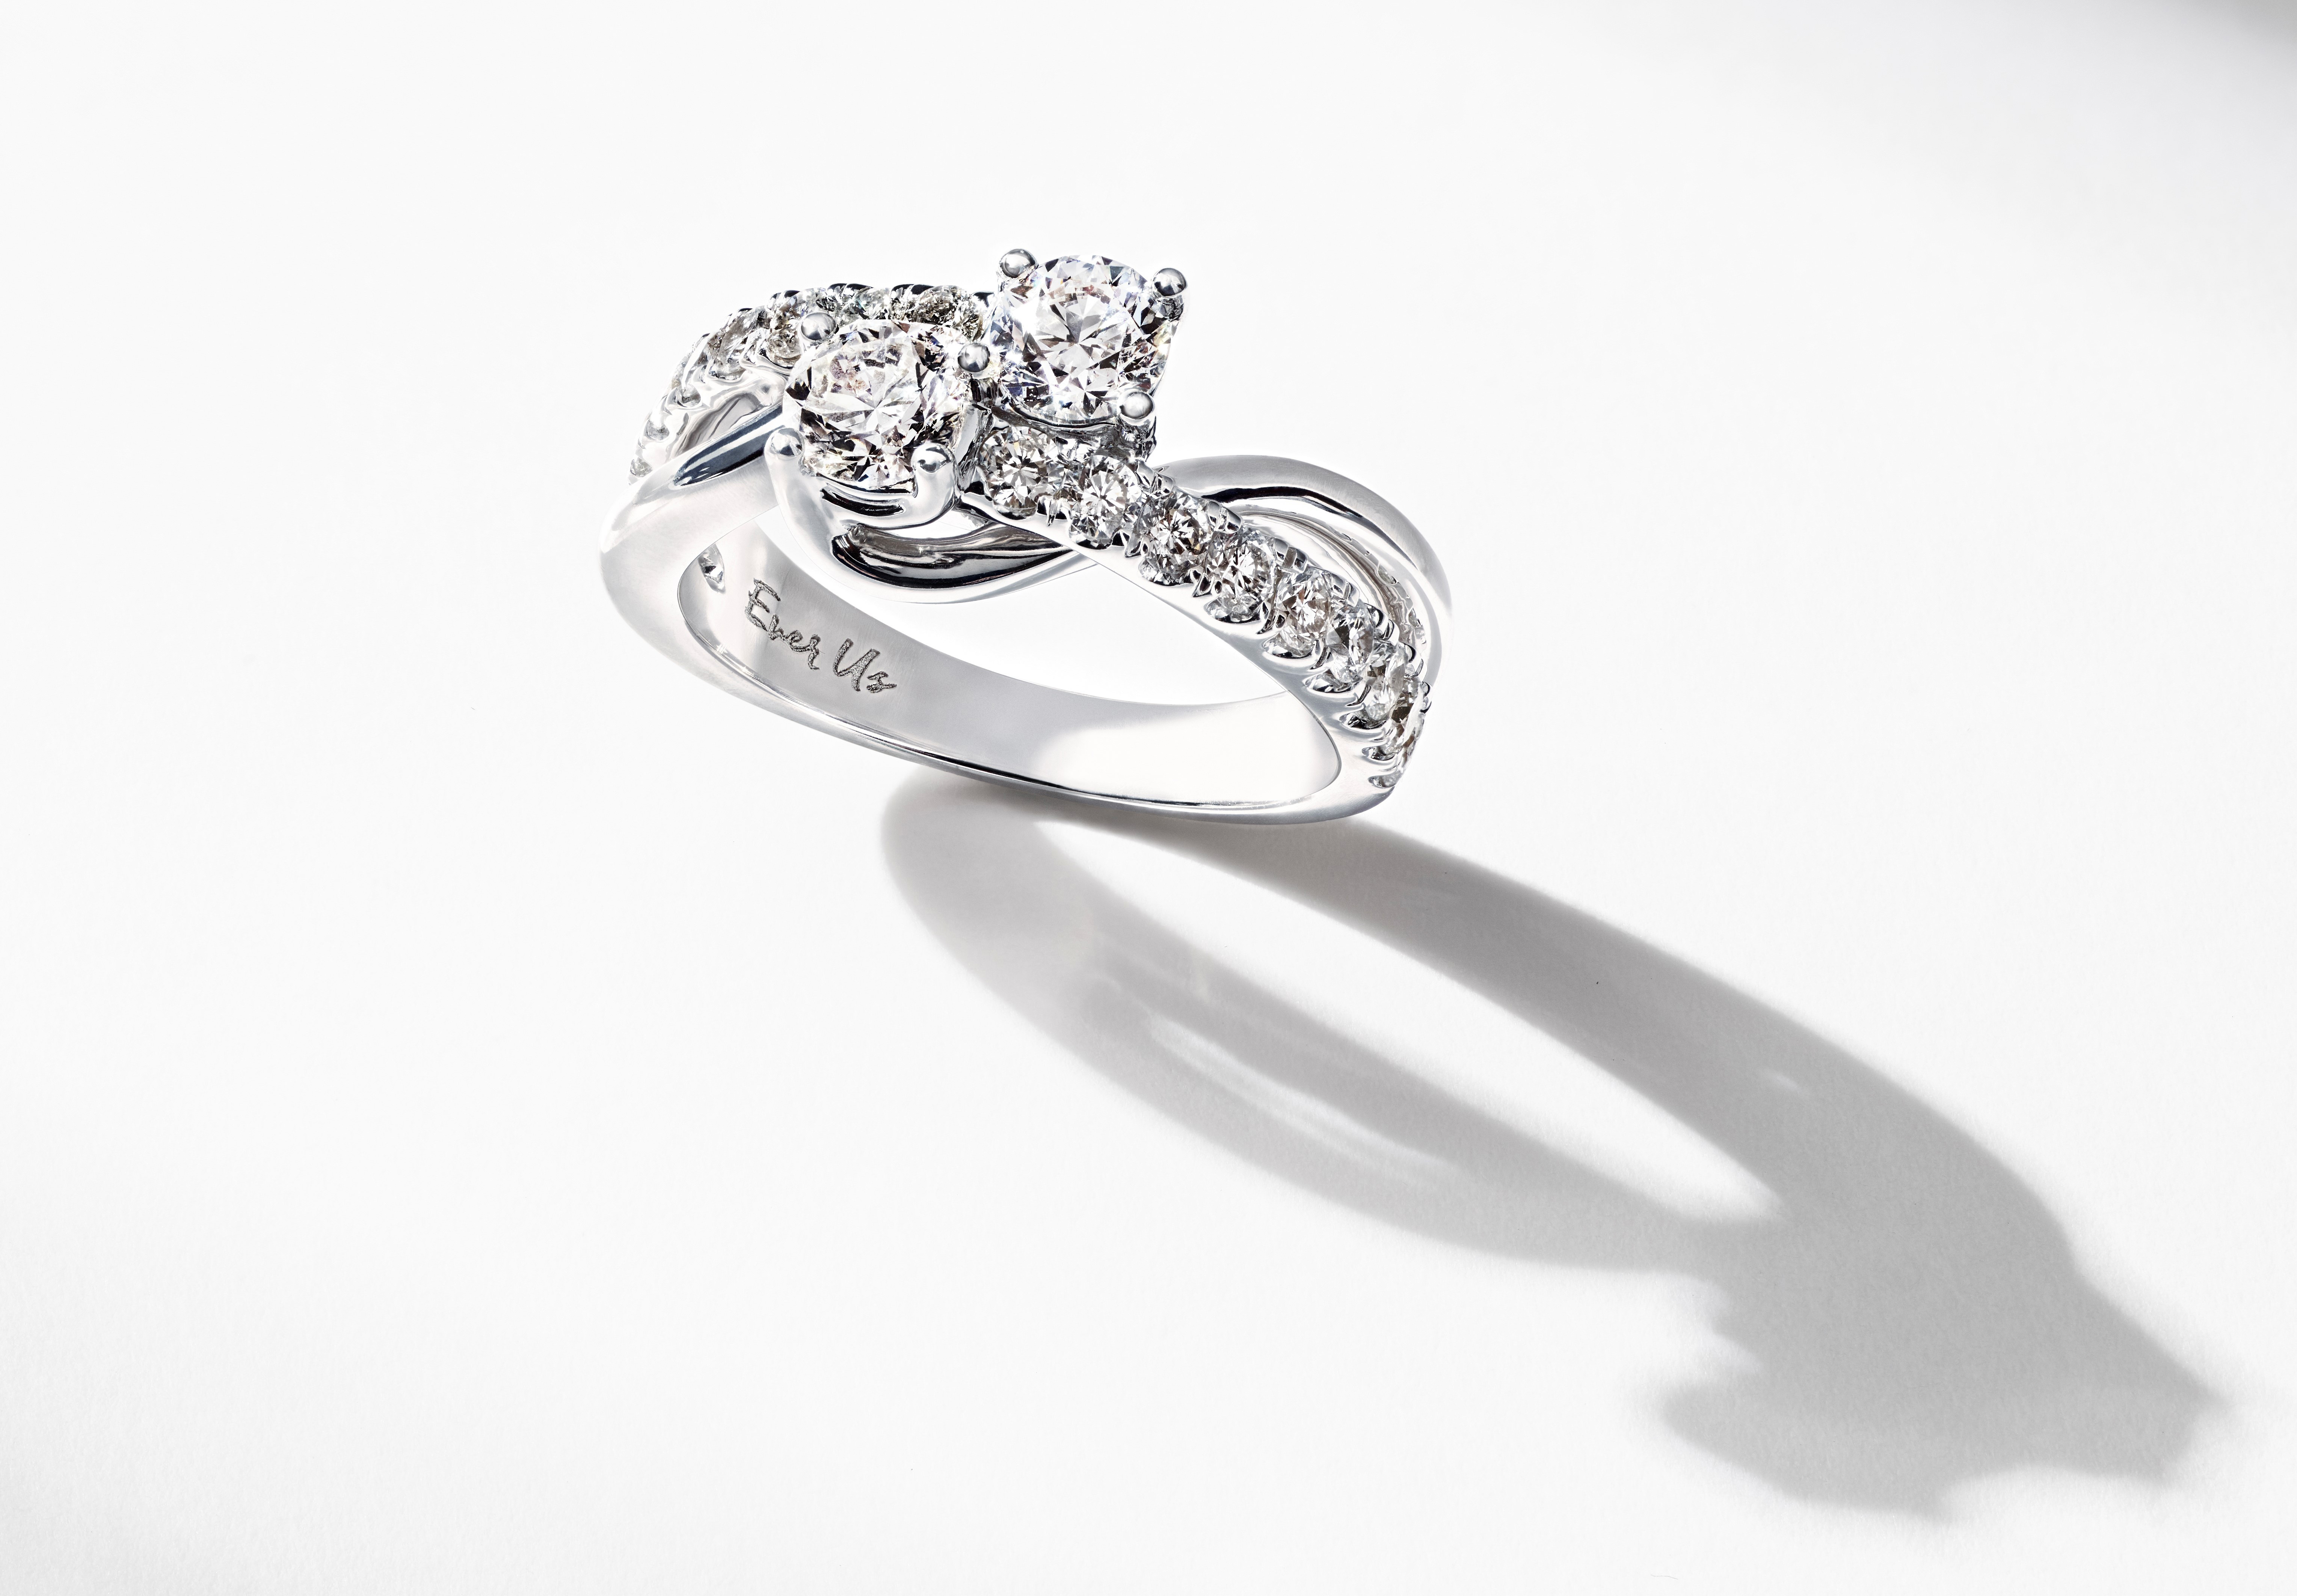 Kay Jewelers Announces Beam Your Love Initiative With New Exclusive Ever Us Designs Business Wire